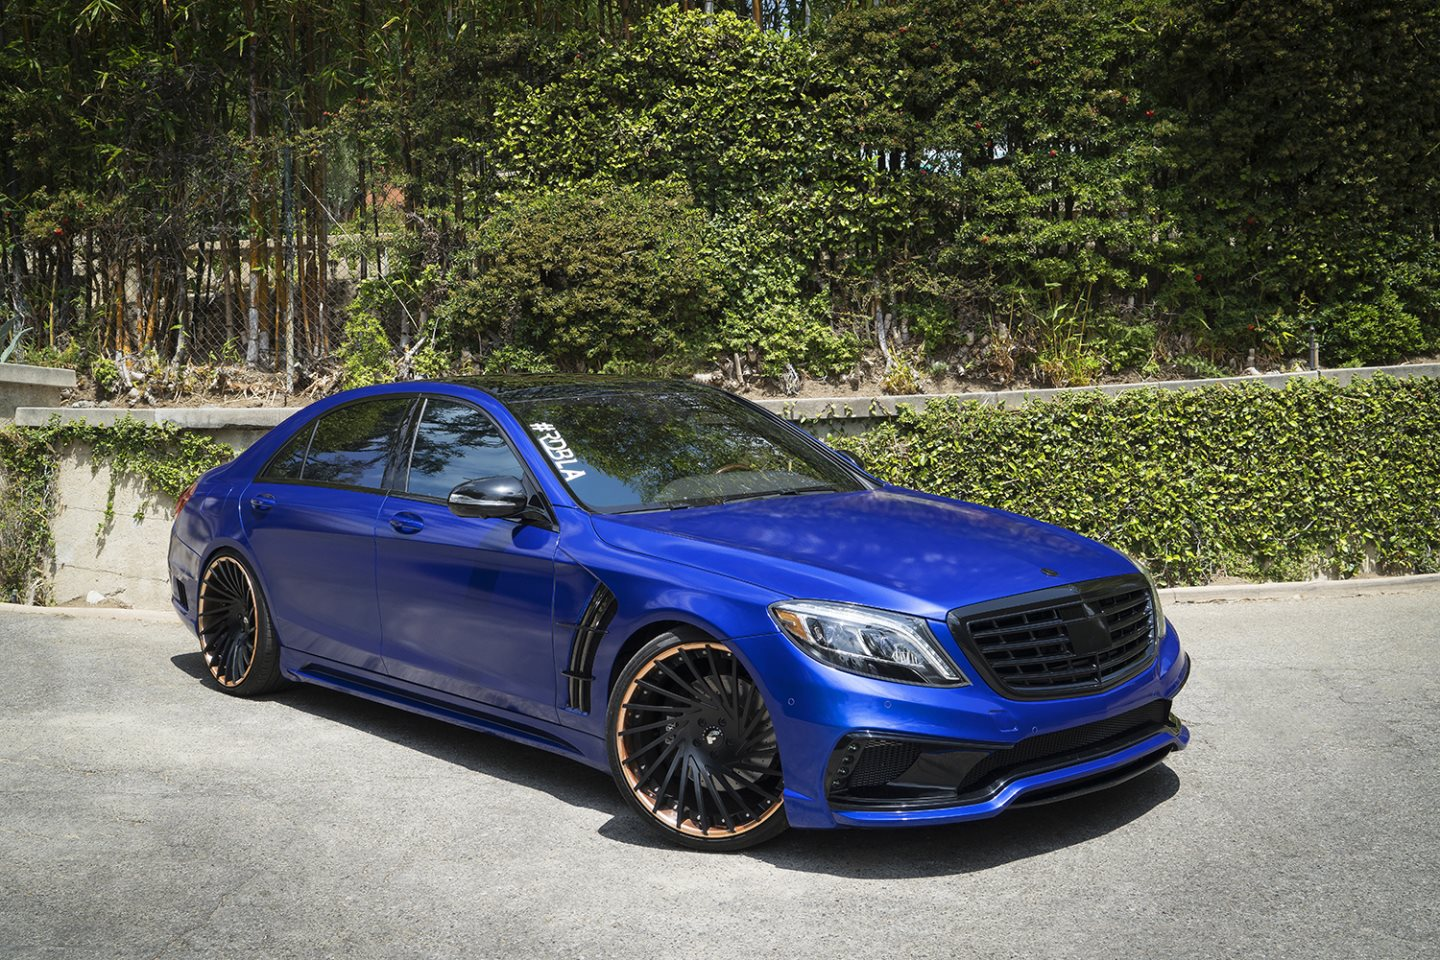 Black bison edition tuning package for the w204 mercedes benz c class - Http Www Benztuning Com 2016 05 Mercedesw222 Forgiato Ventoso Black Bison Html